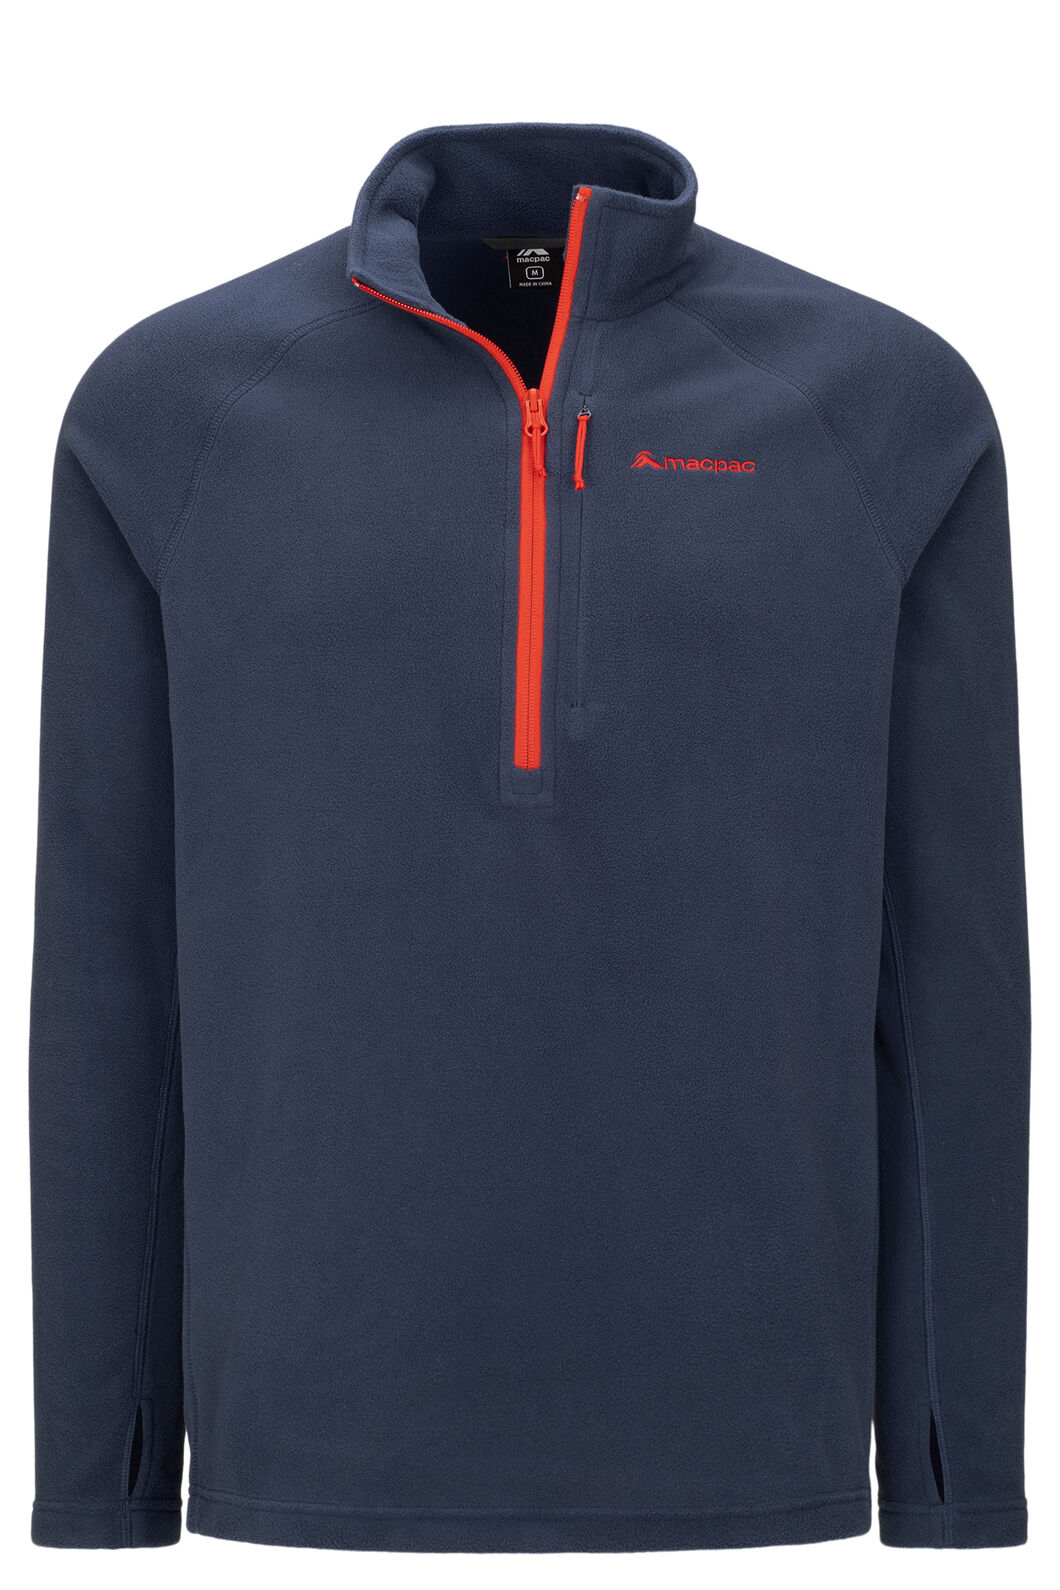 Macpac Tui Polartec® Micro Fleece® Pullover — Men's, Black Iris/Grenadine, hi-res